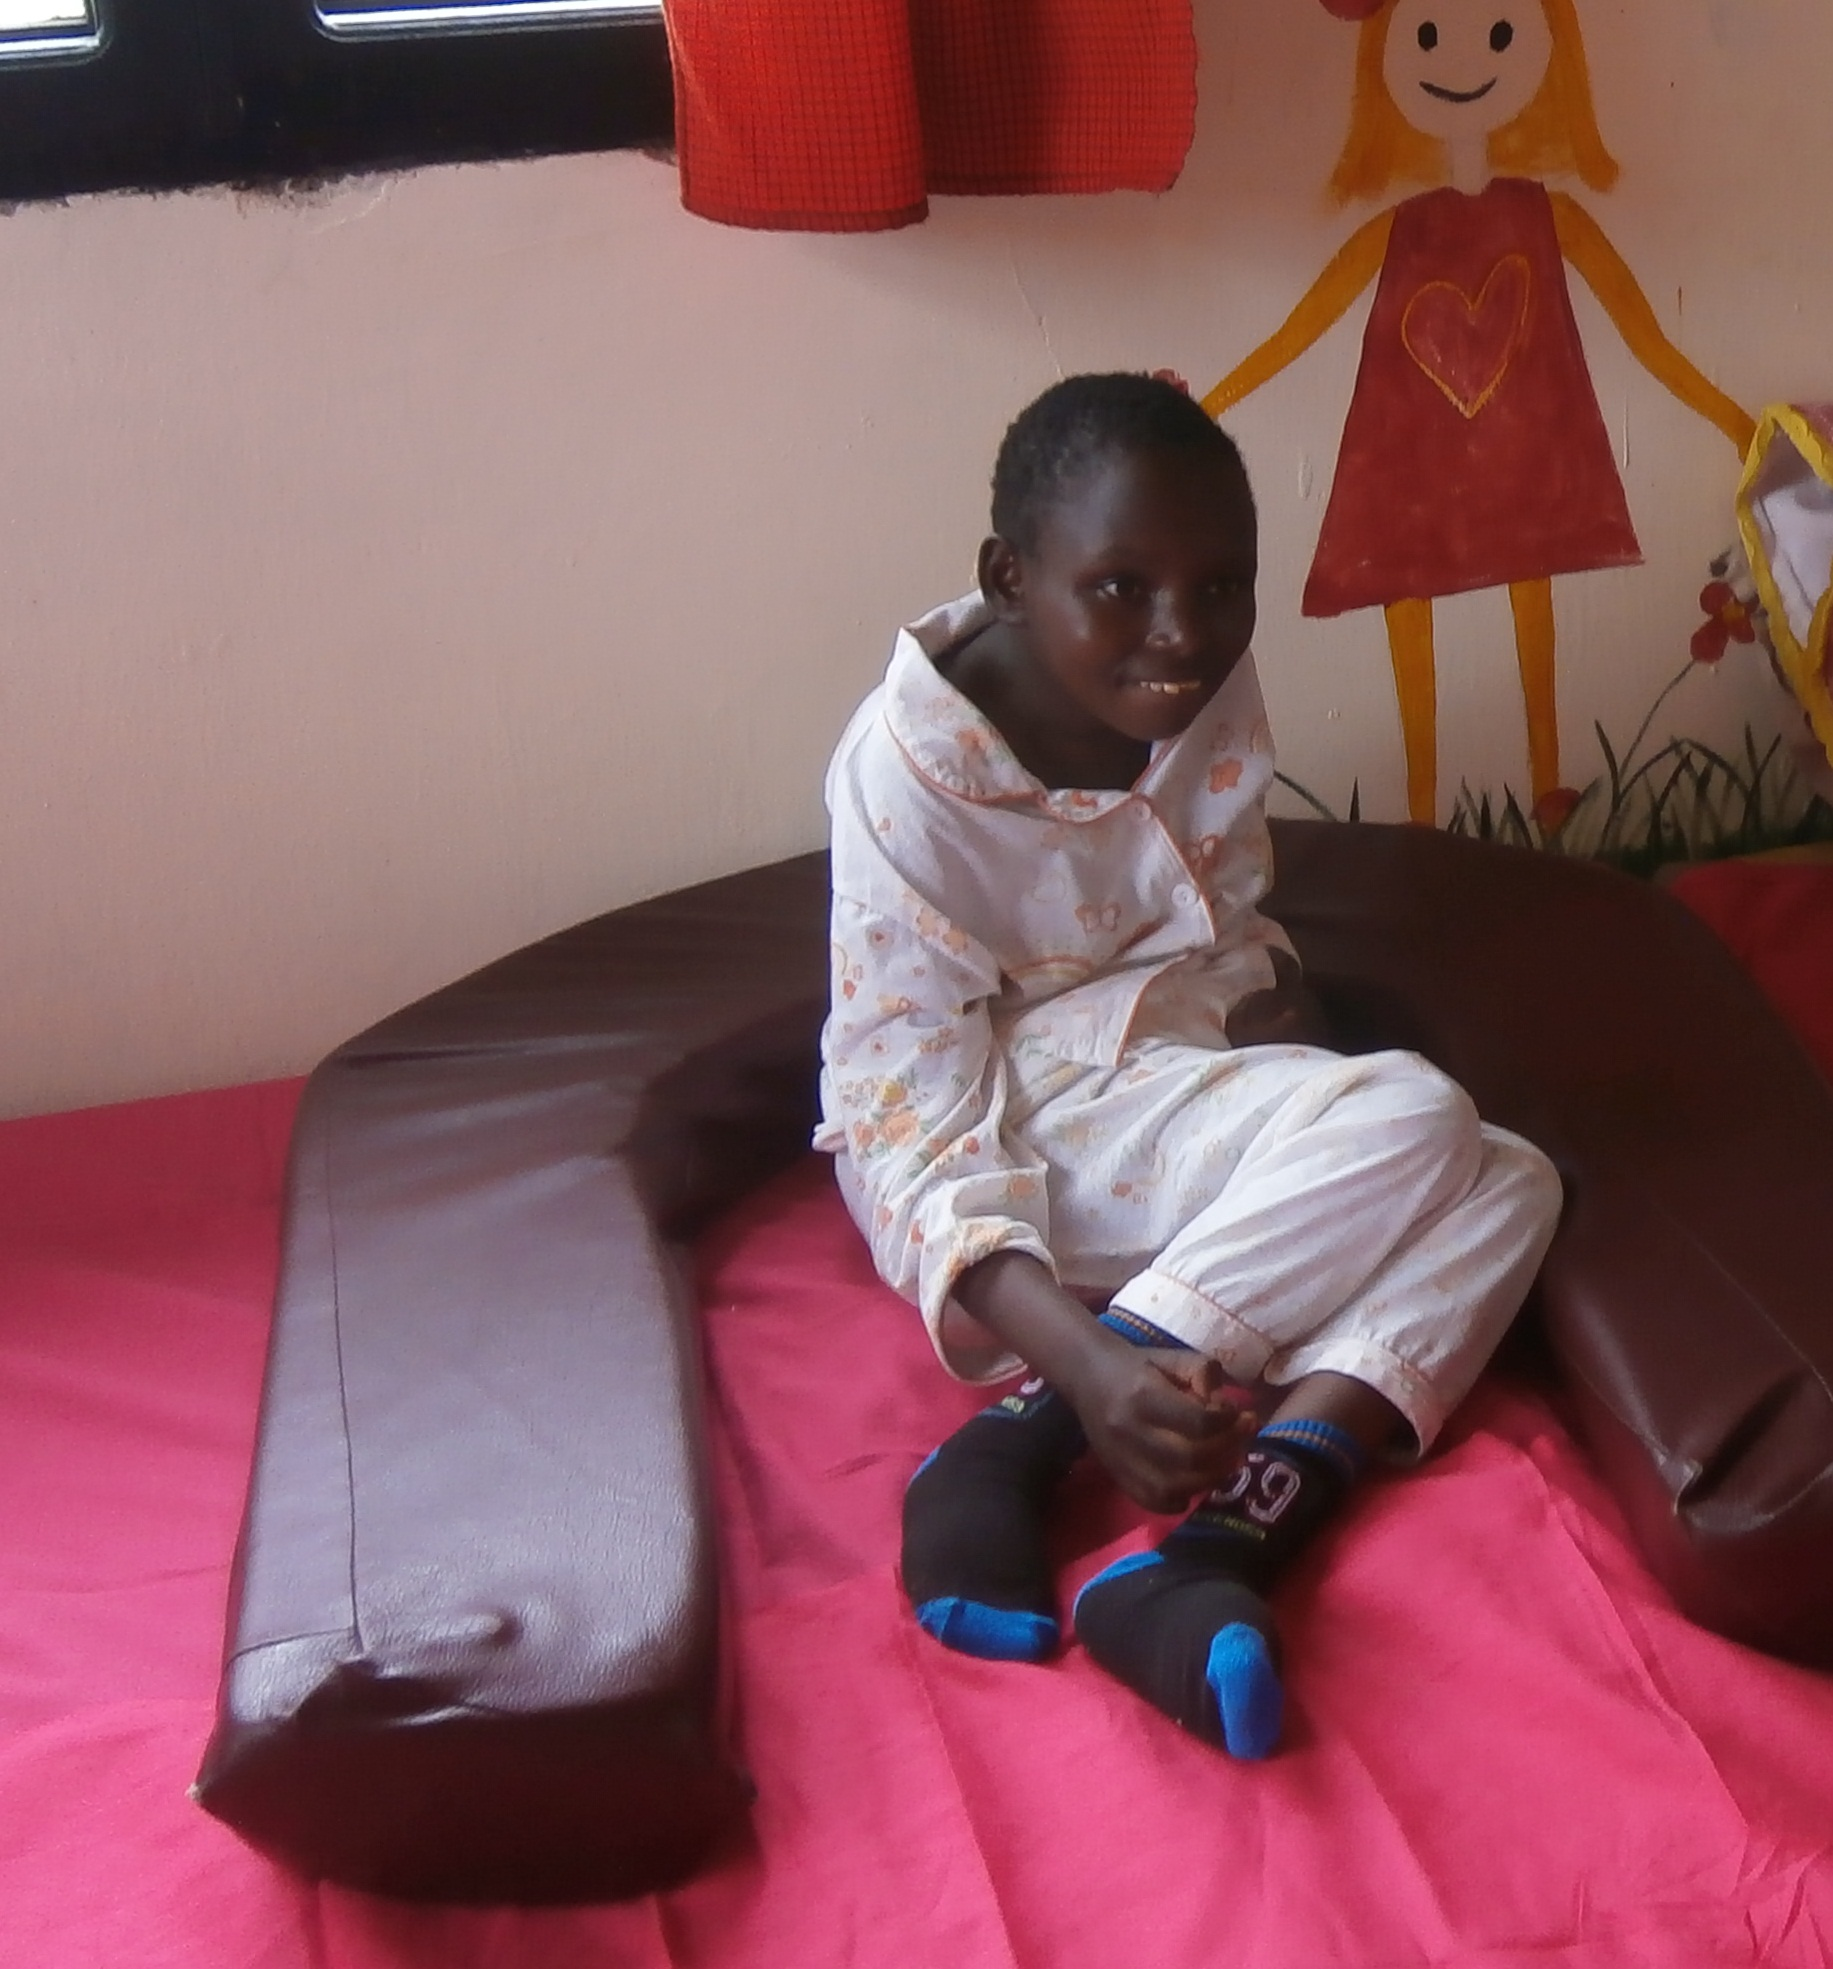 Judith was abandened by her father and no other home would admit her due to her severe disabilities.